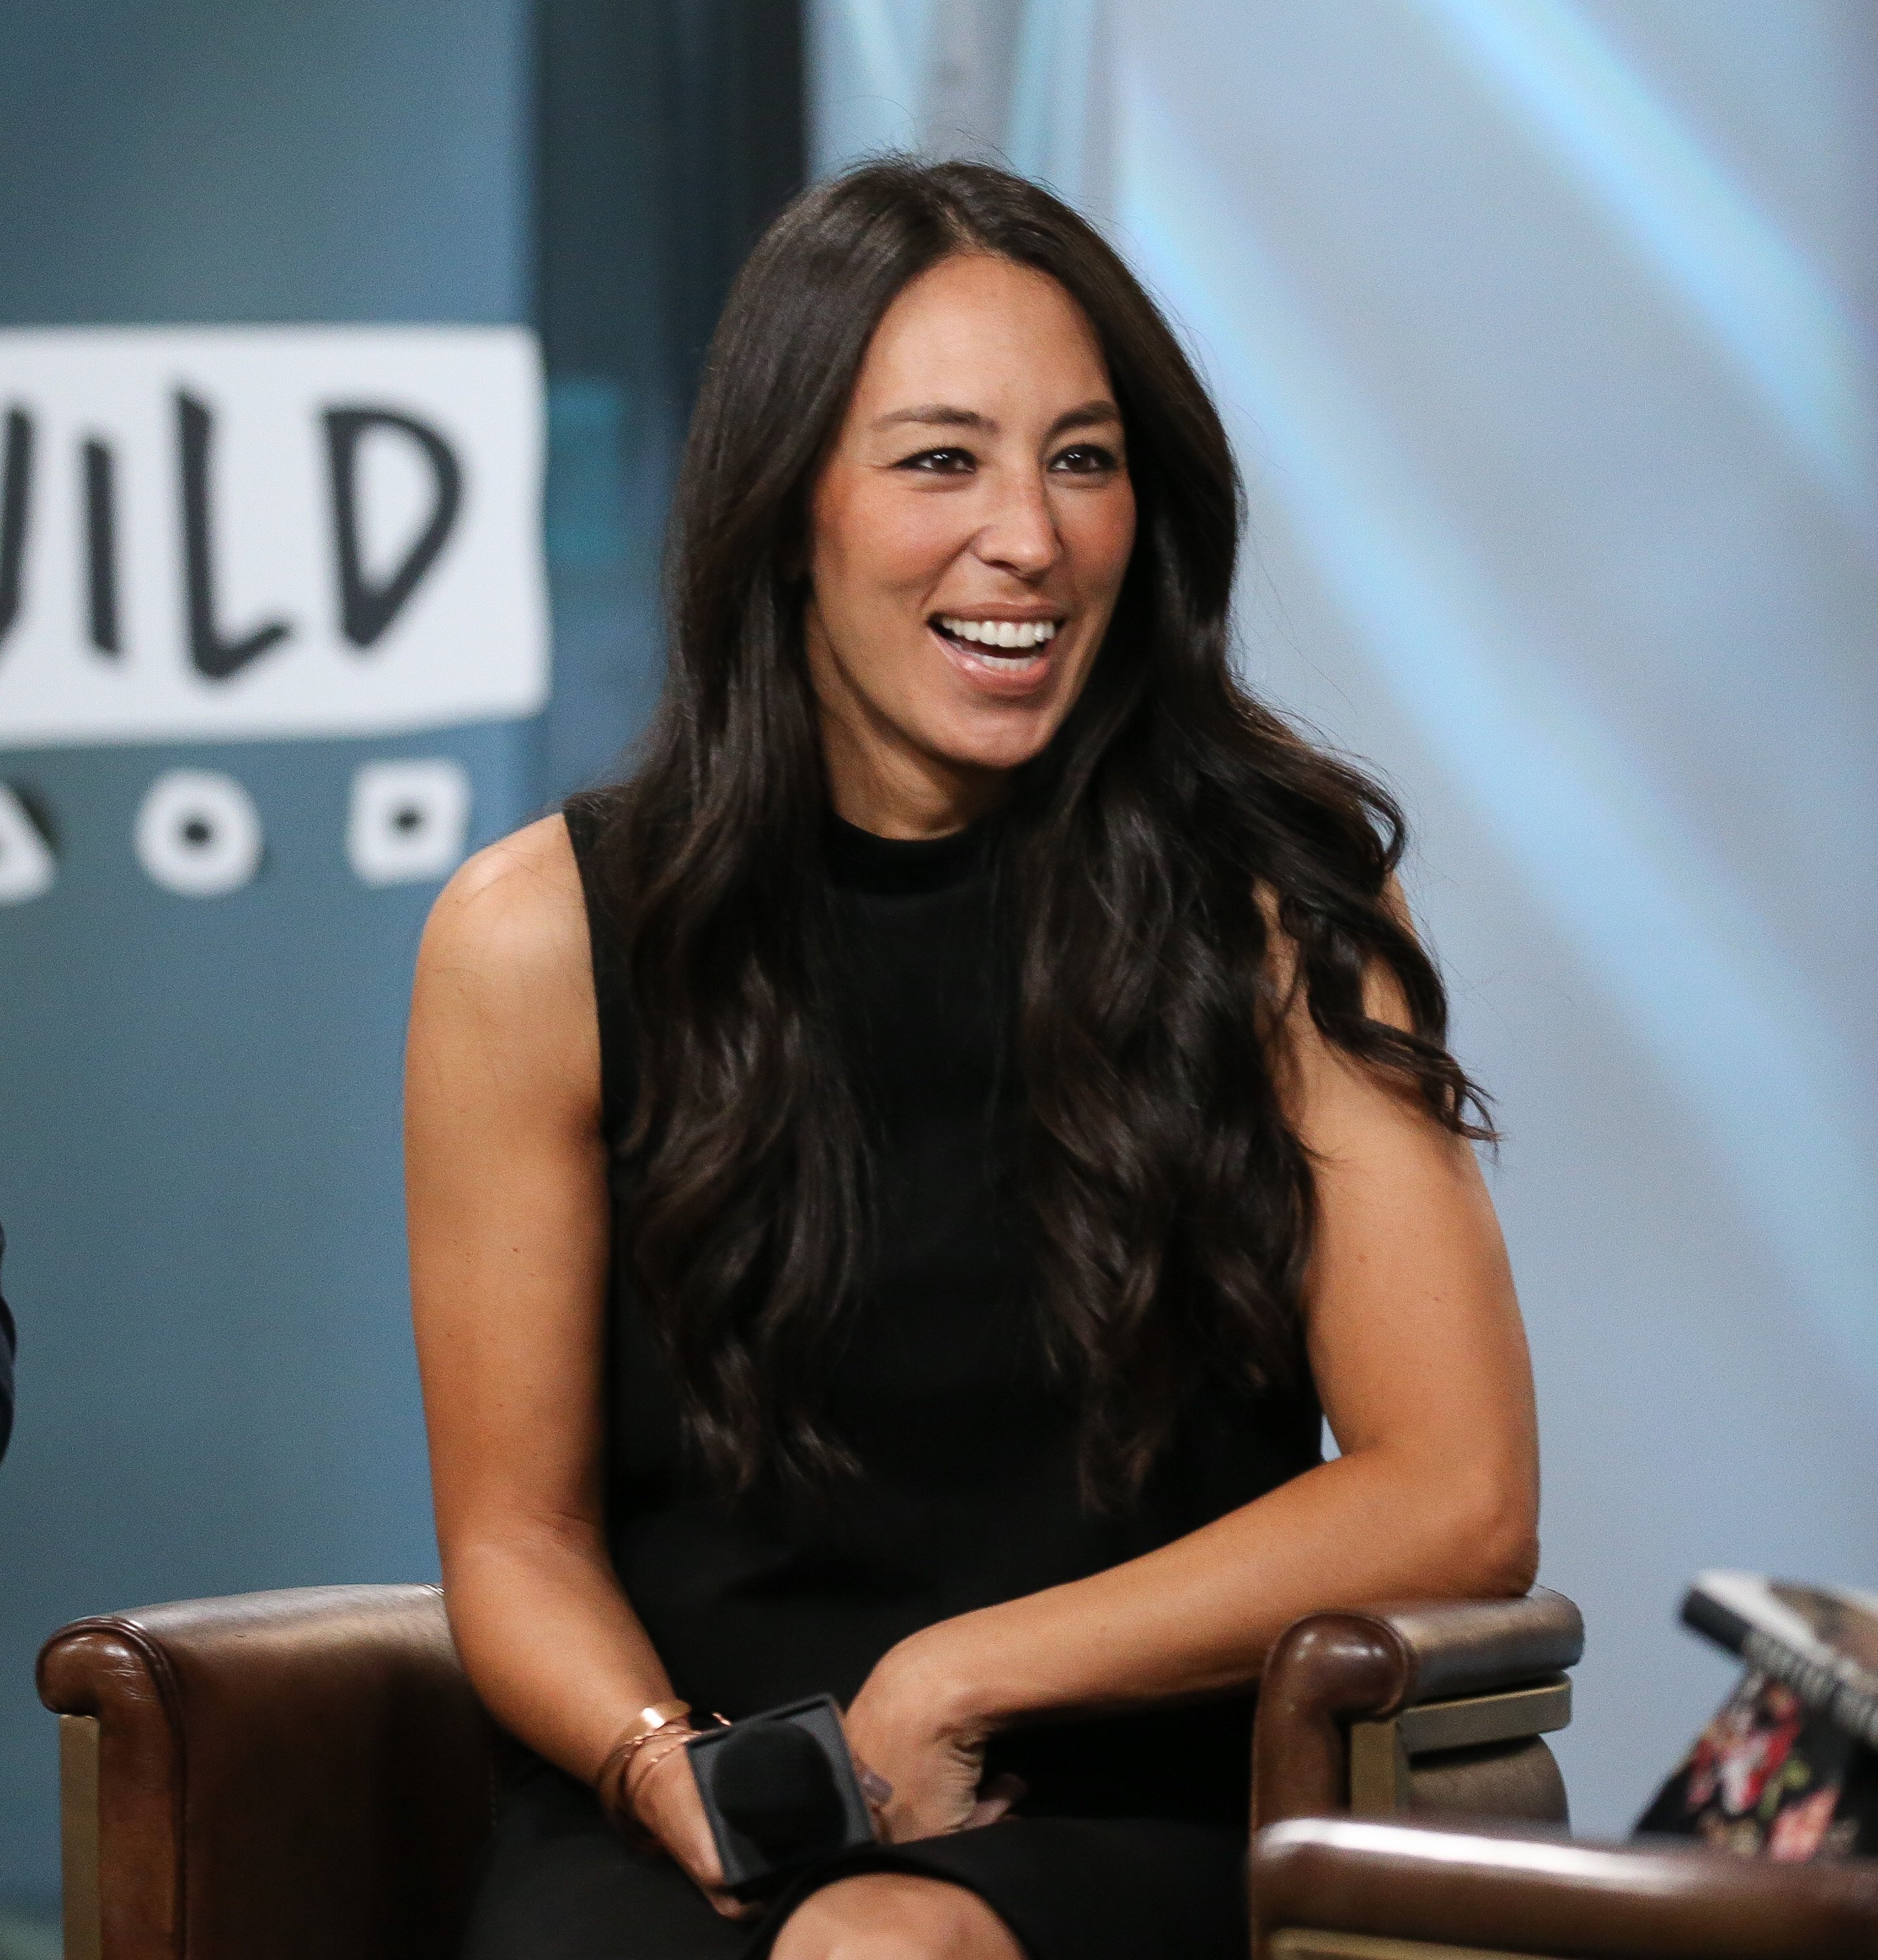 """Joanna Gaines discusses new book, """"Capital Gaines: Smart Things I Learned Doing Stupid Stuff"""" at Build Studio on October 18, 2017. 